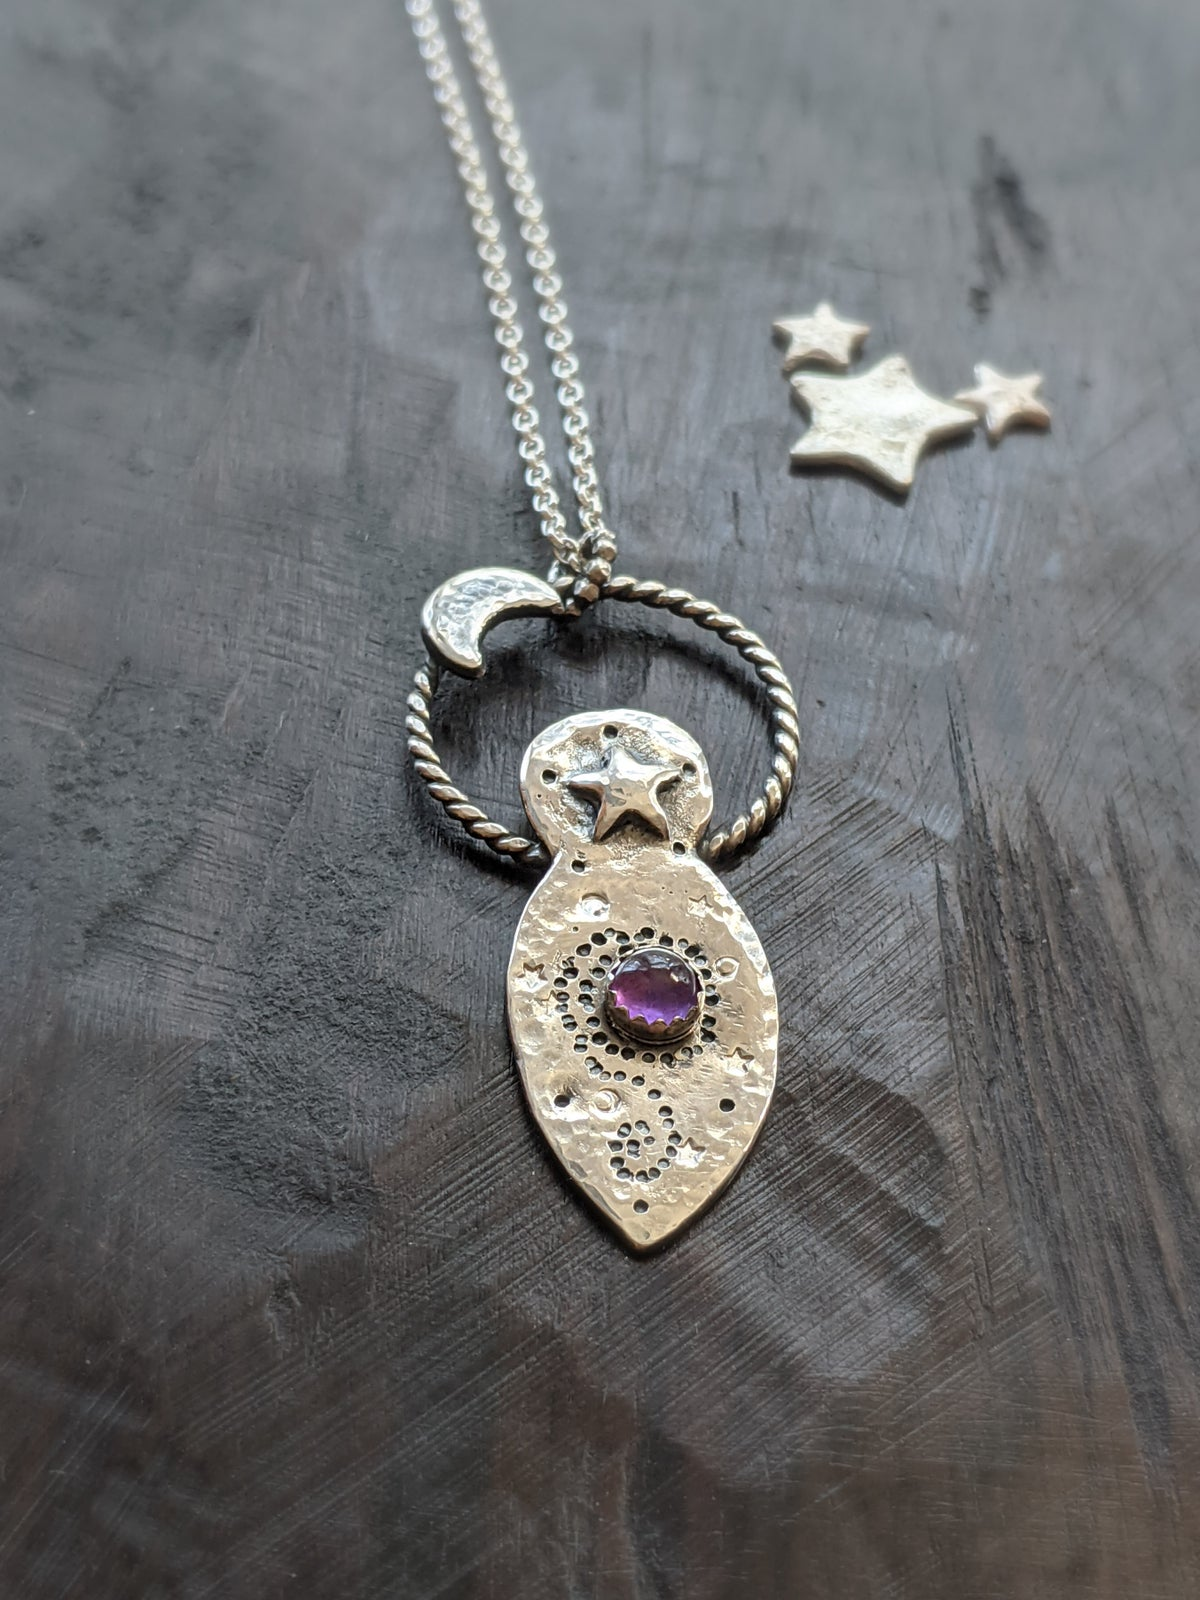 Moon Goddess recycled textured silver & amethyst pendant